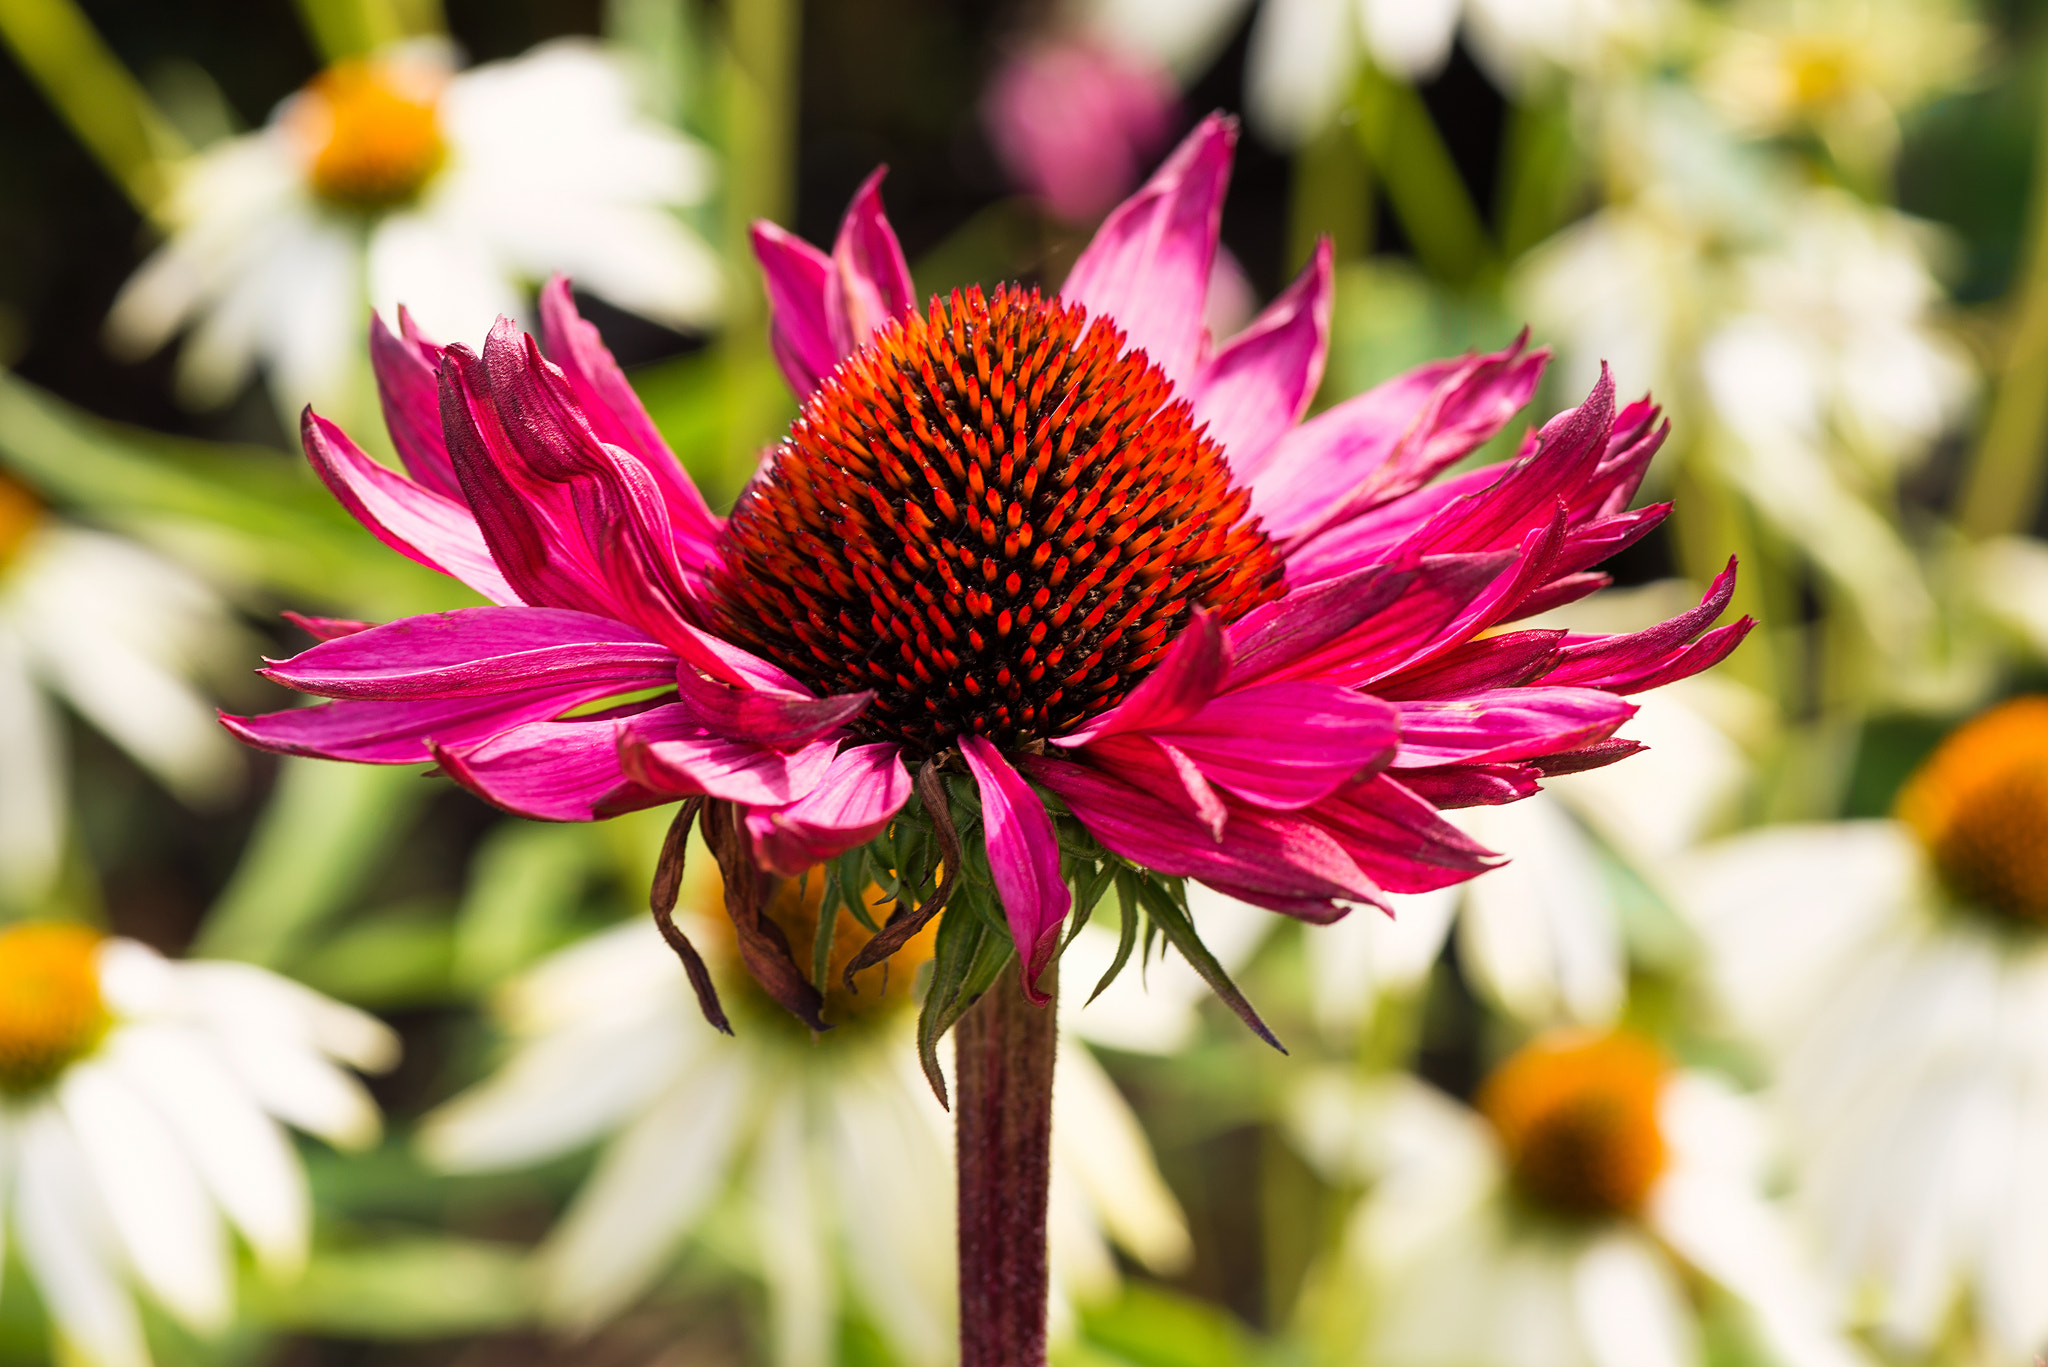 Photograph Purple coneflower with white coneflower in background  by Stefan Holm on 500px